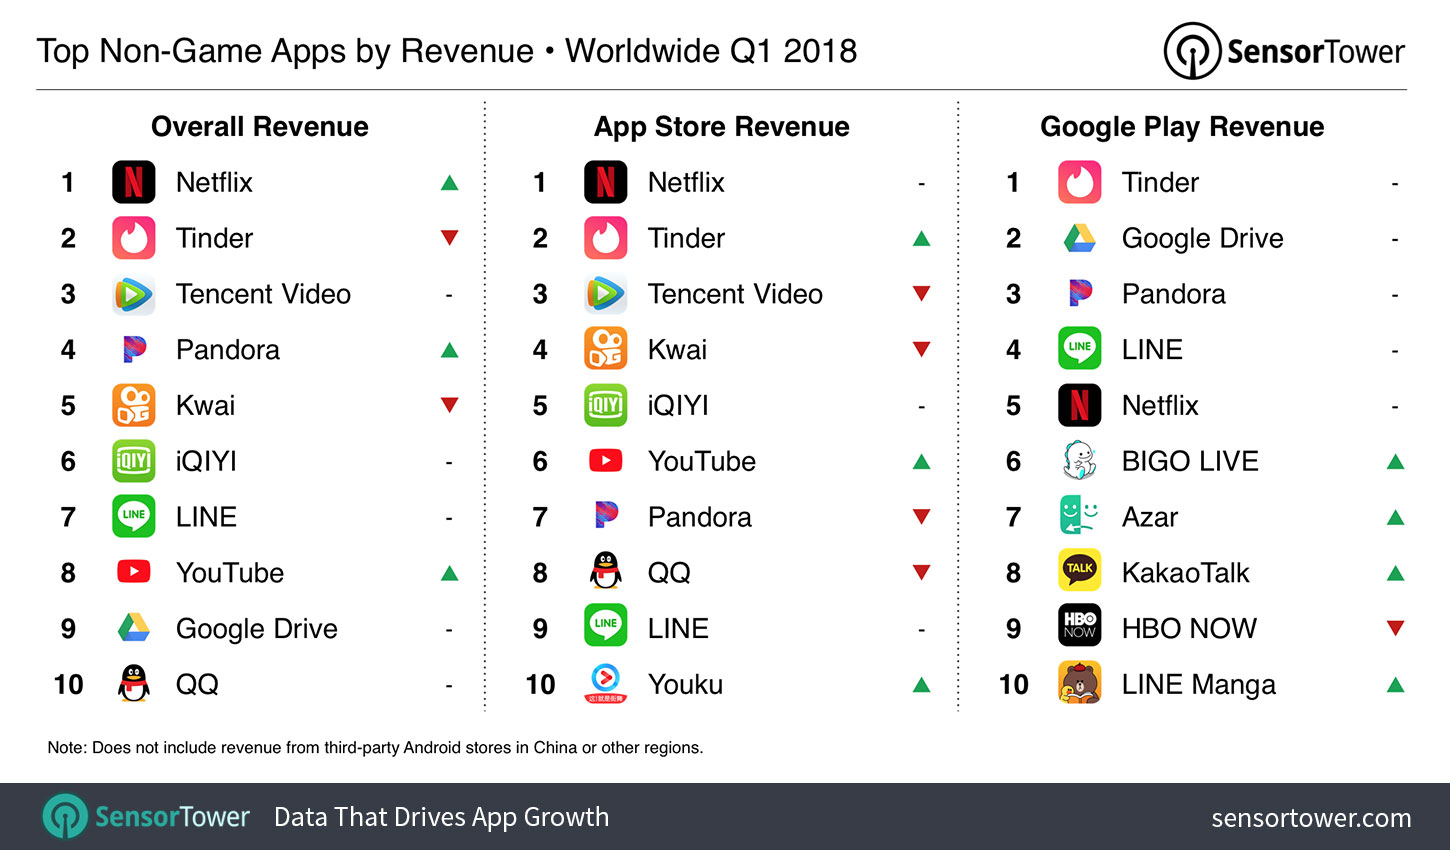 The Top Mobile Apps, Games, and Publishers of Q1 2018